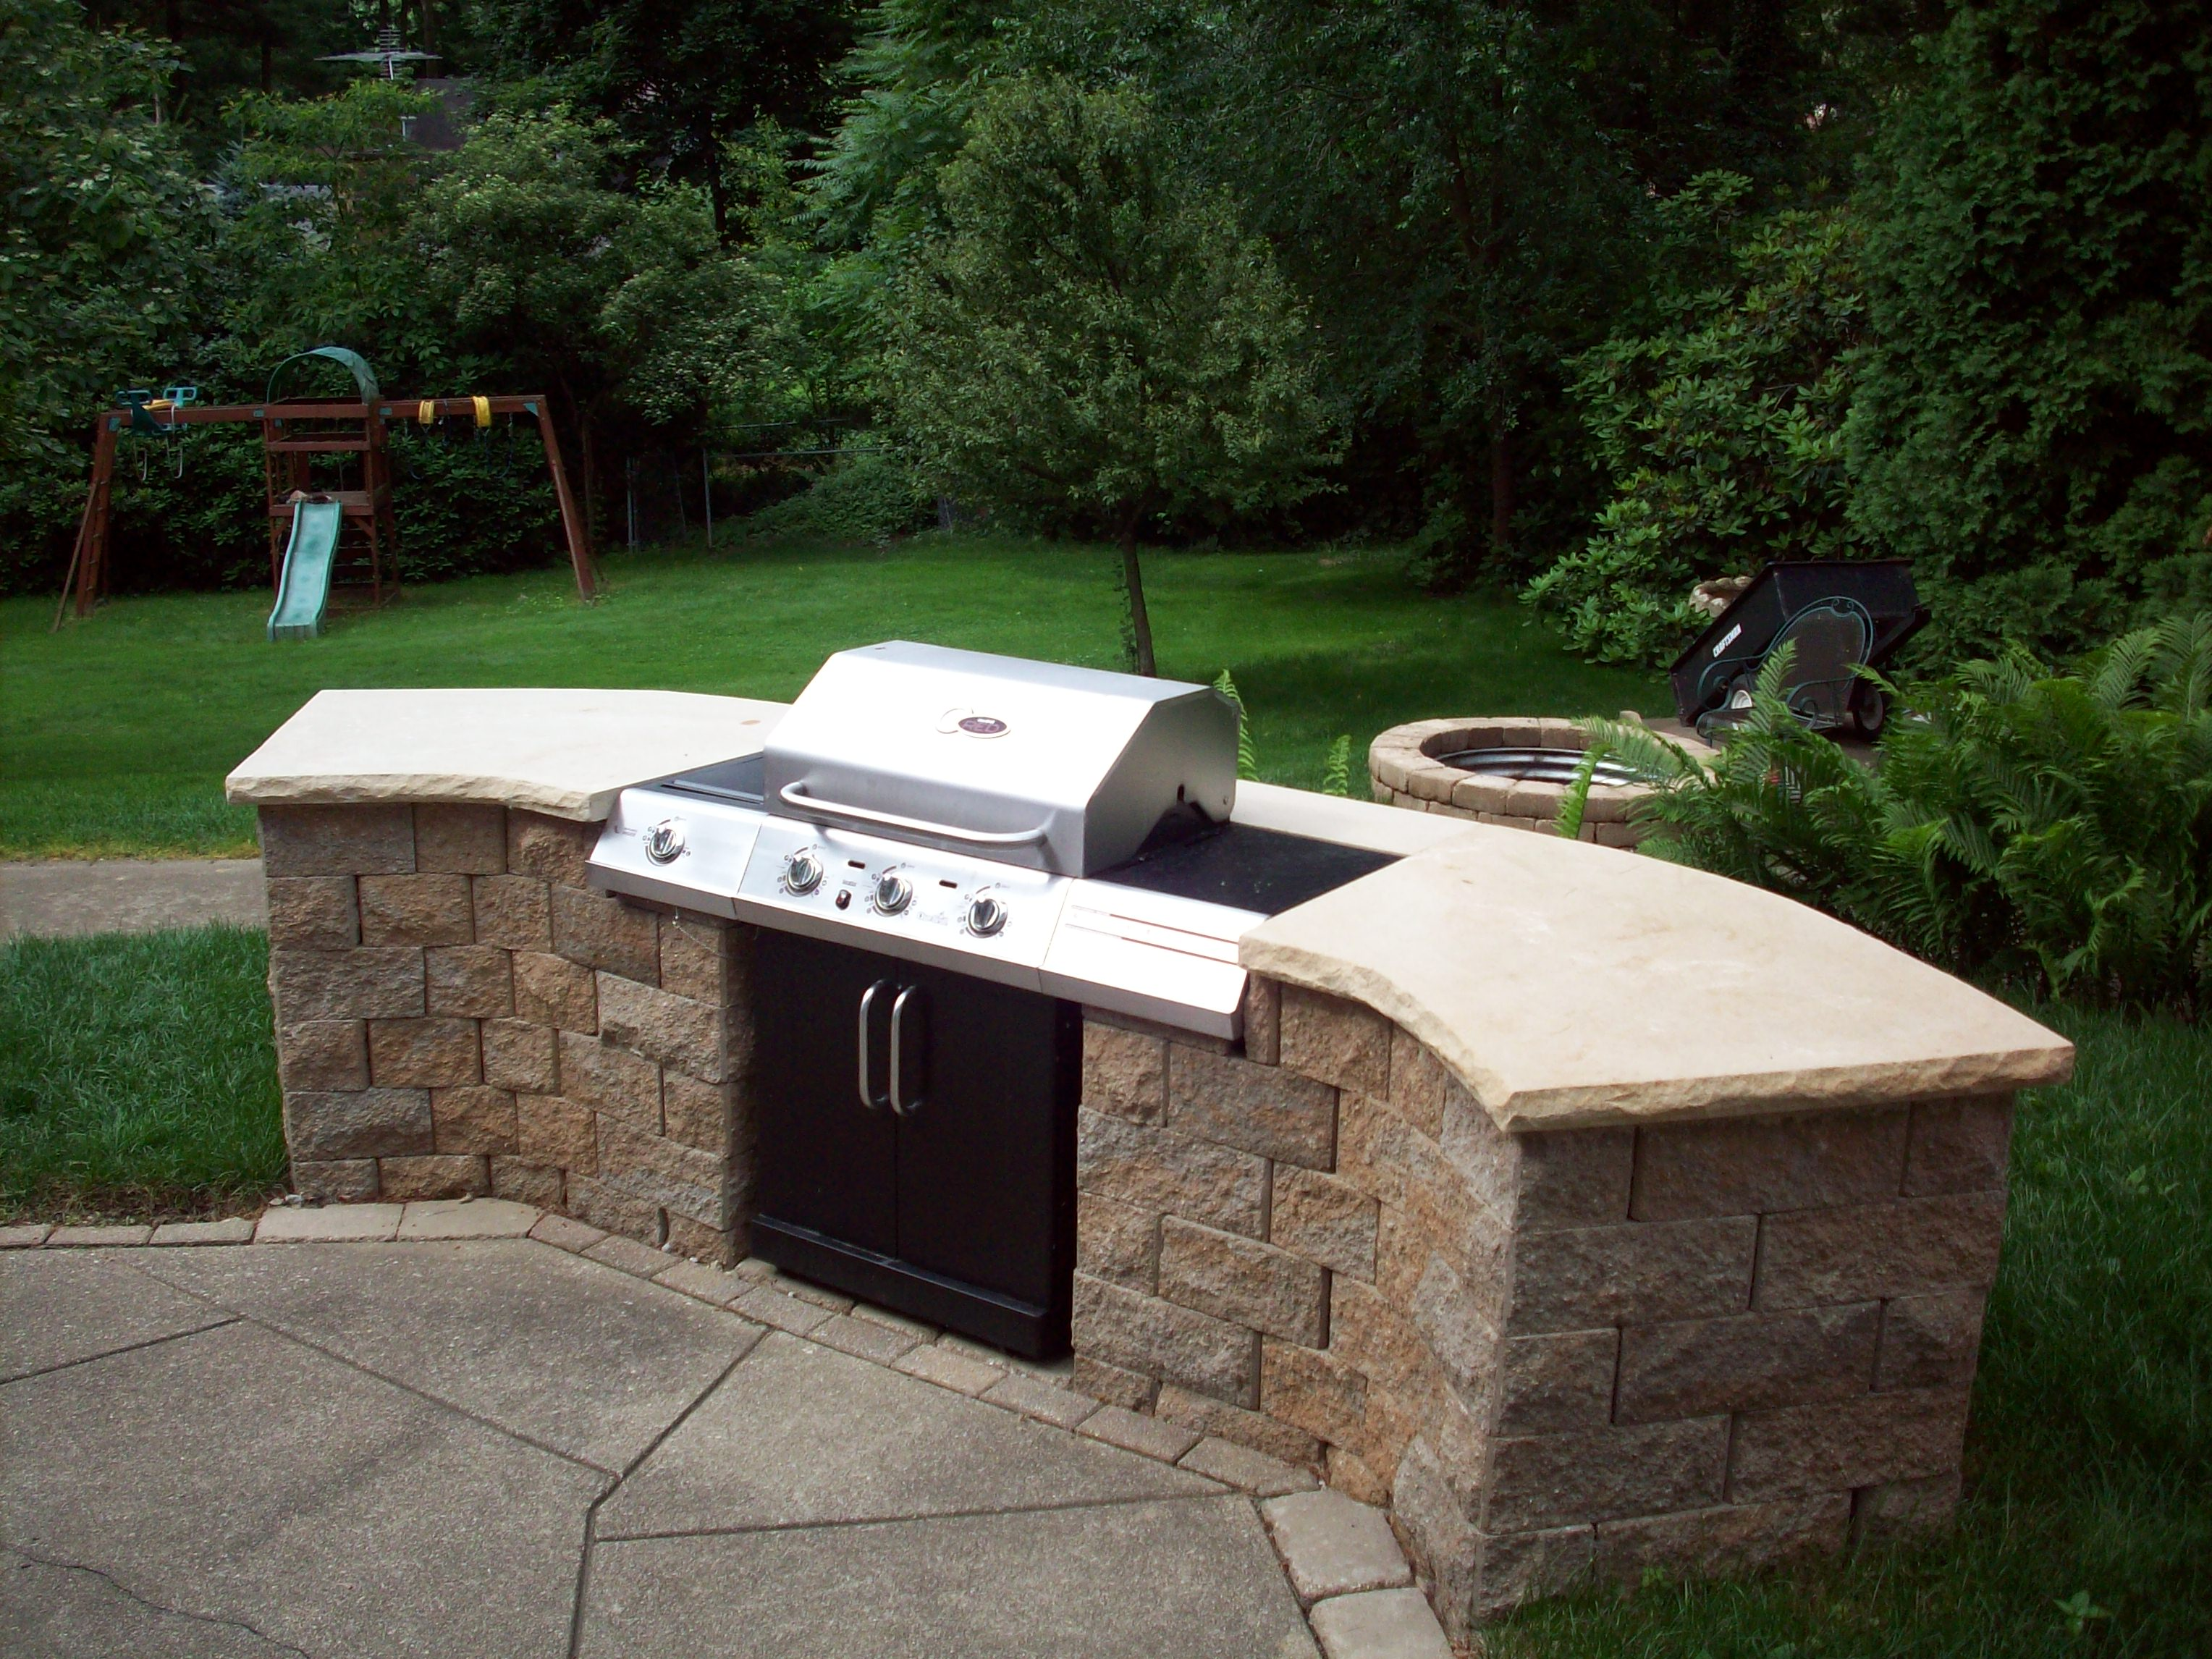 Amazing Outdoor Grills Built in BBQ 3056 x 2292 · 1233 kB · jpeg